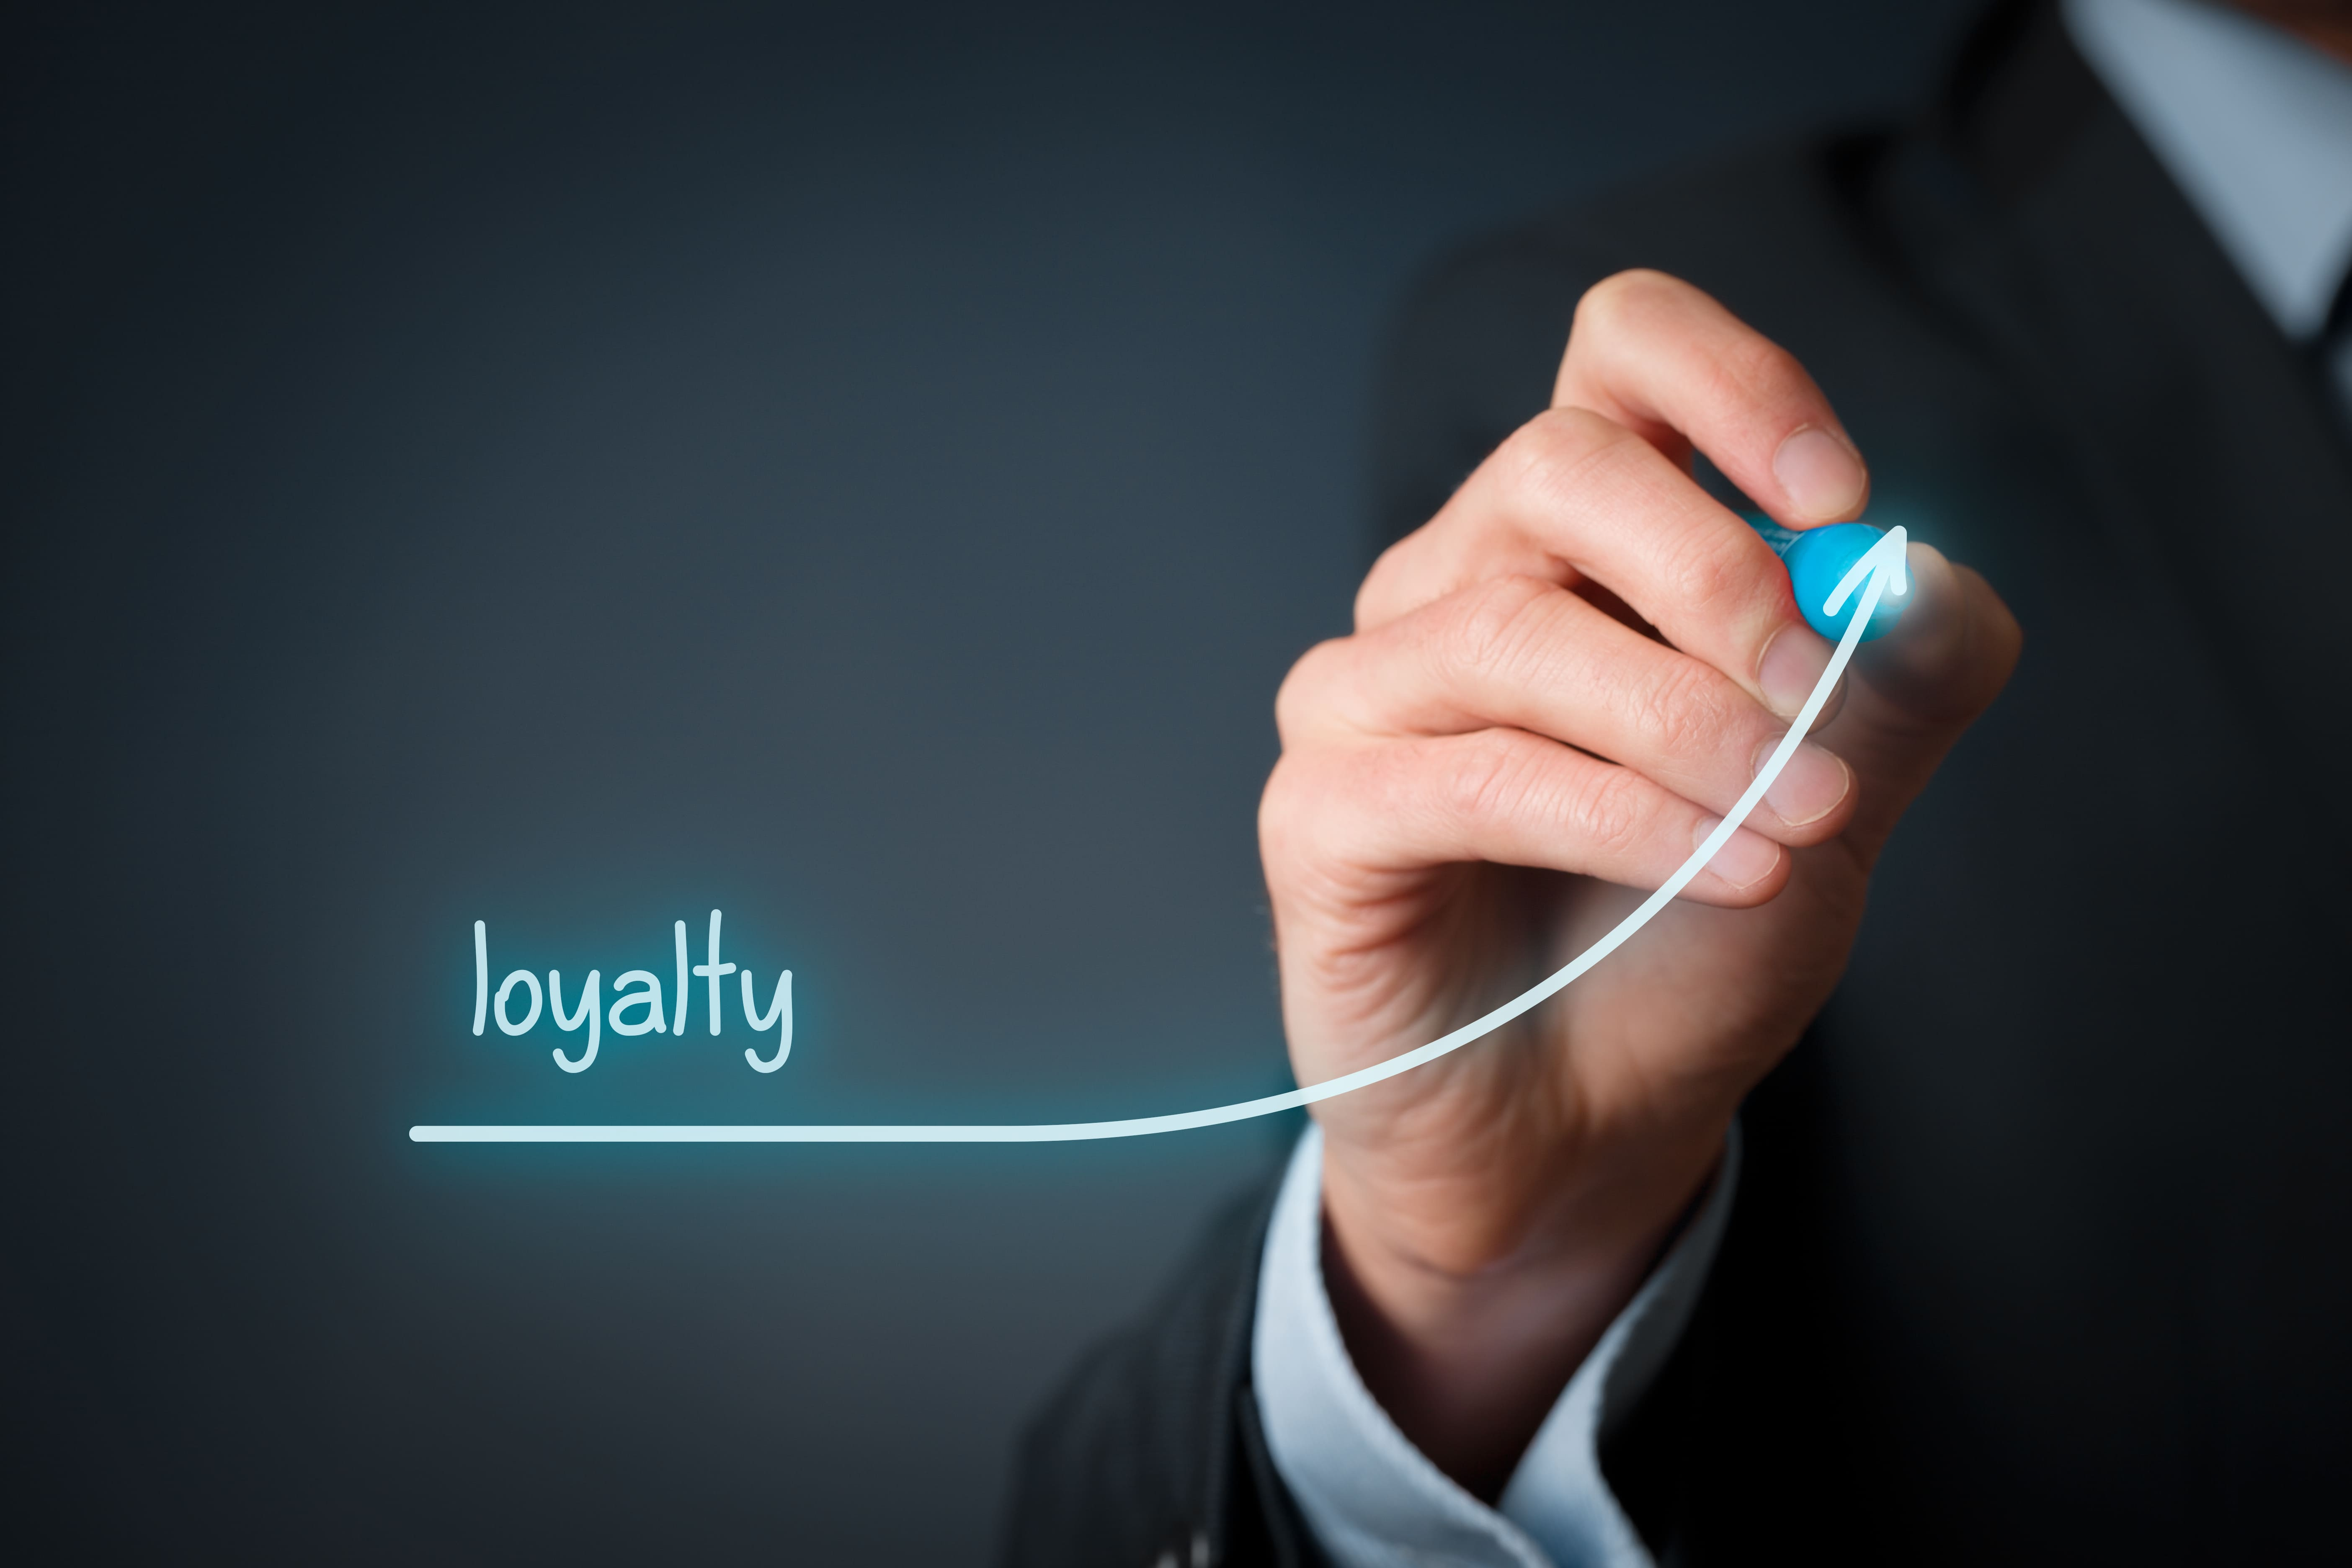 https://vcc.live/wp-content/uploads/2019/09/3-Easy-To-Implement-Tips-to-Building-Employee-Loyalty-in-the-Call-Center-1.jpg